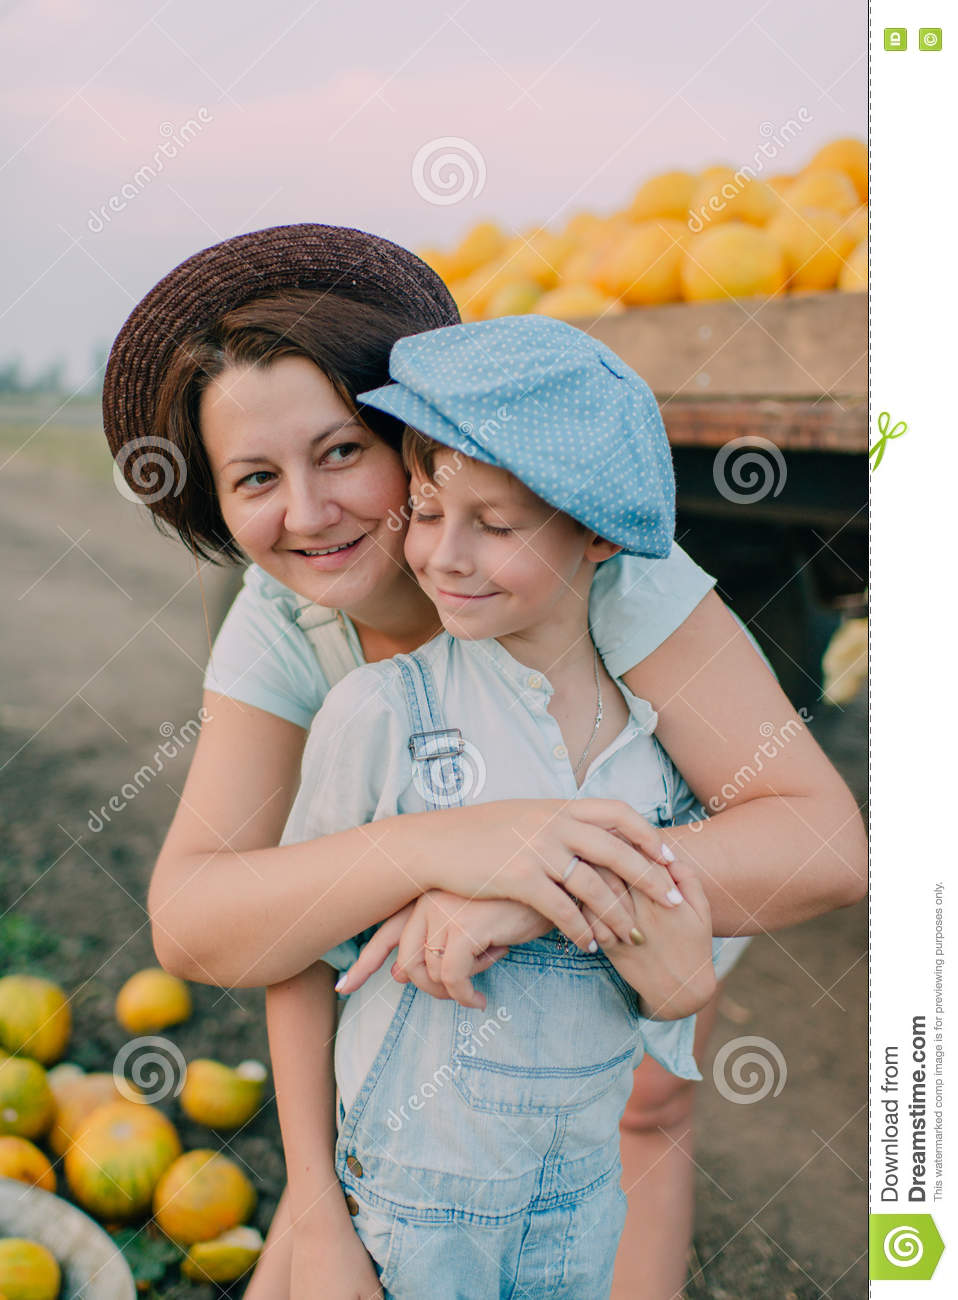 Mom and son riding melons | XXX photos)